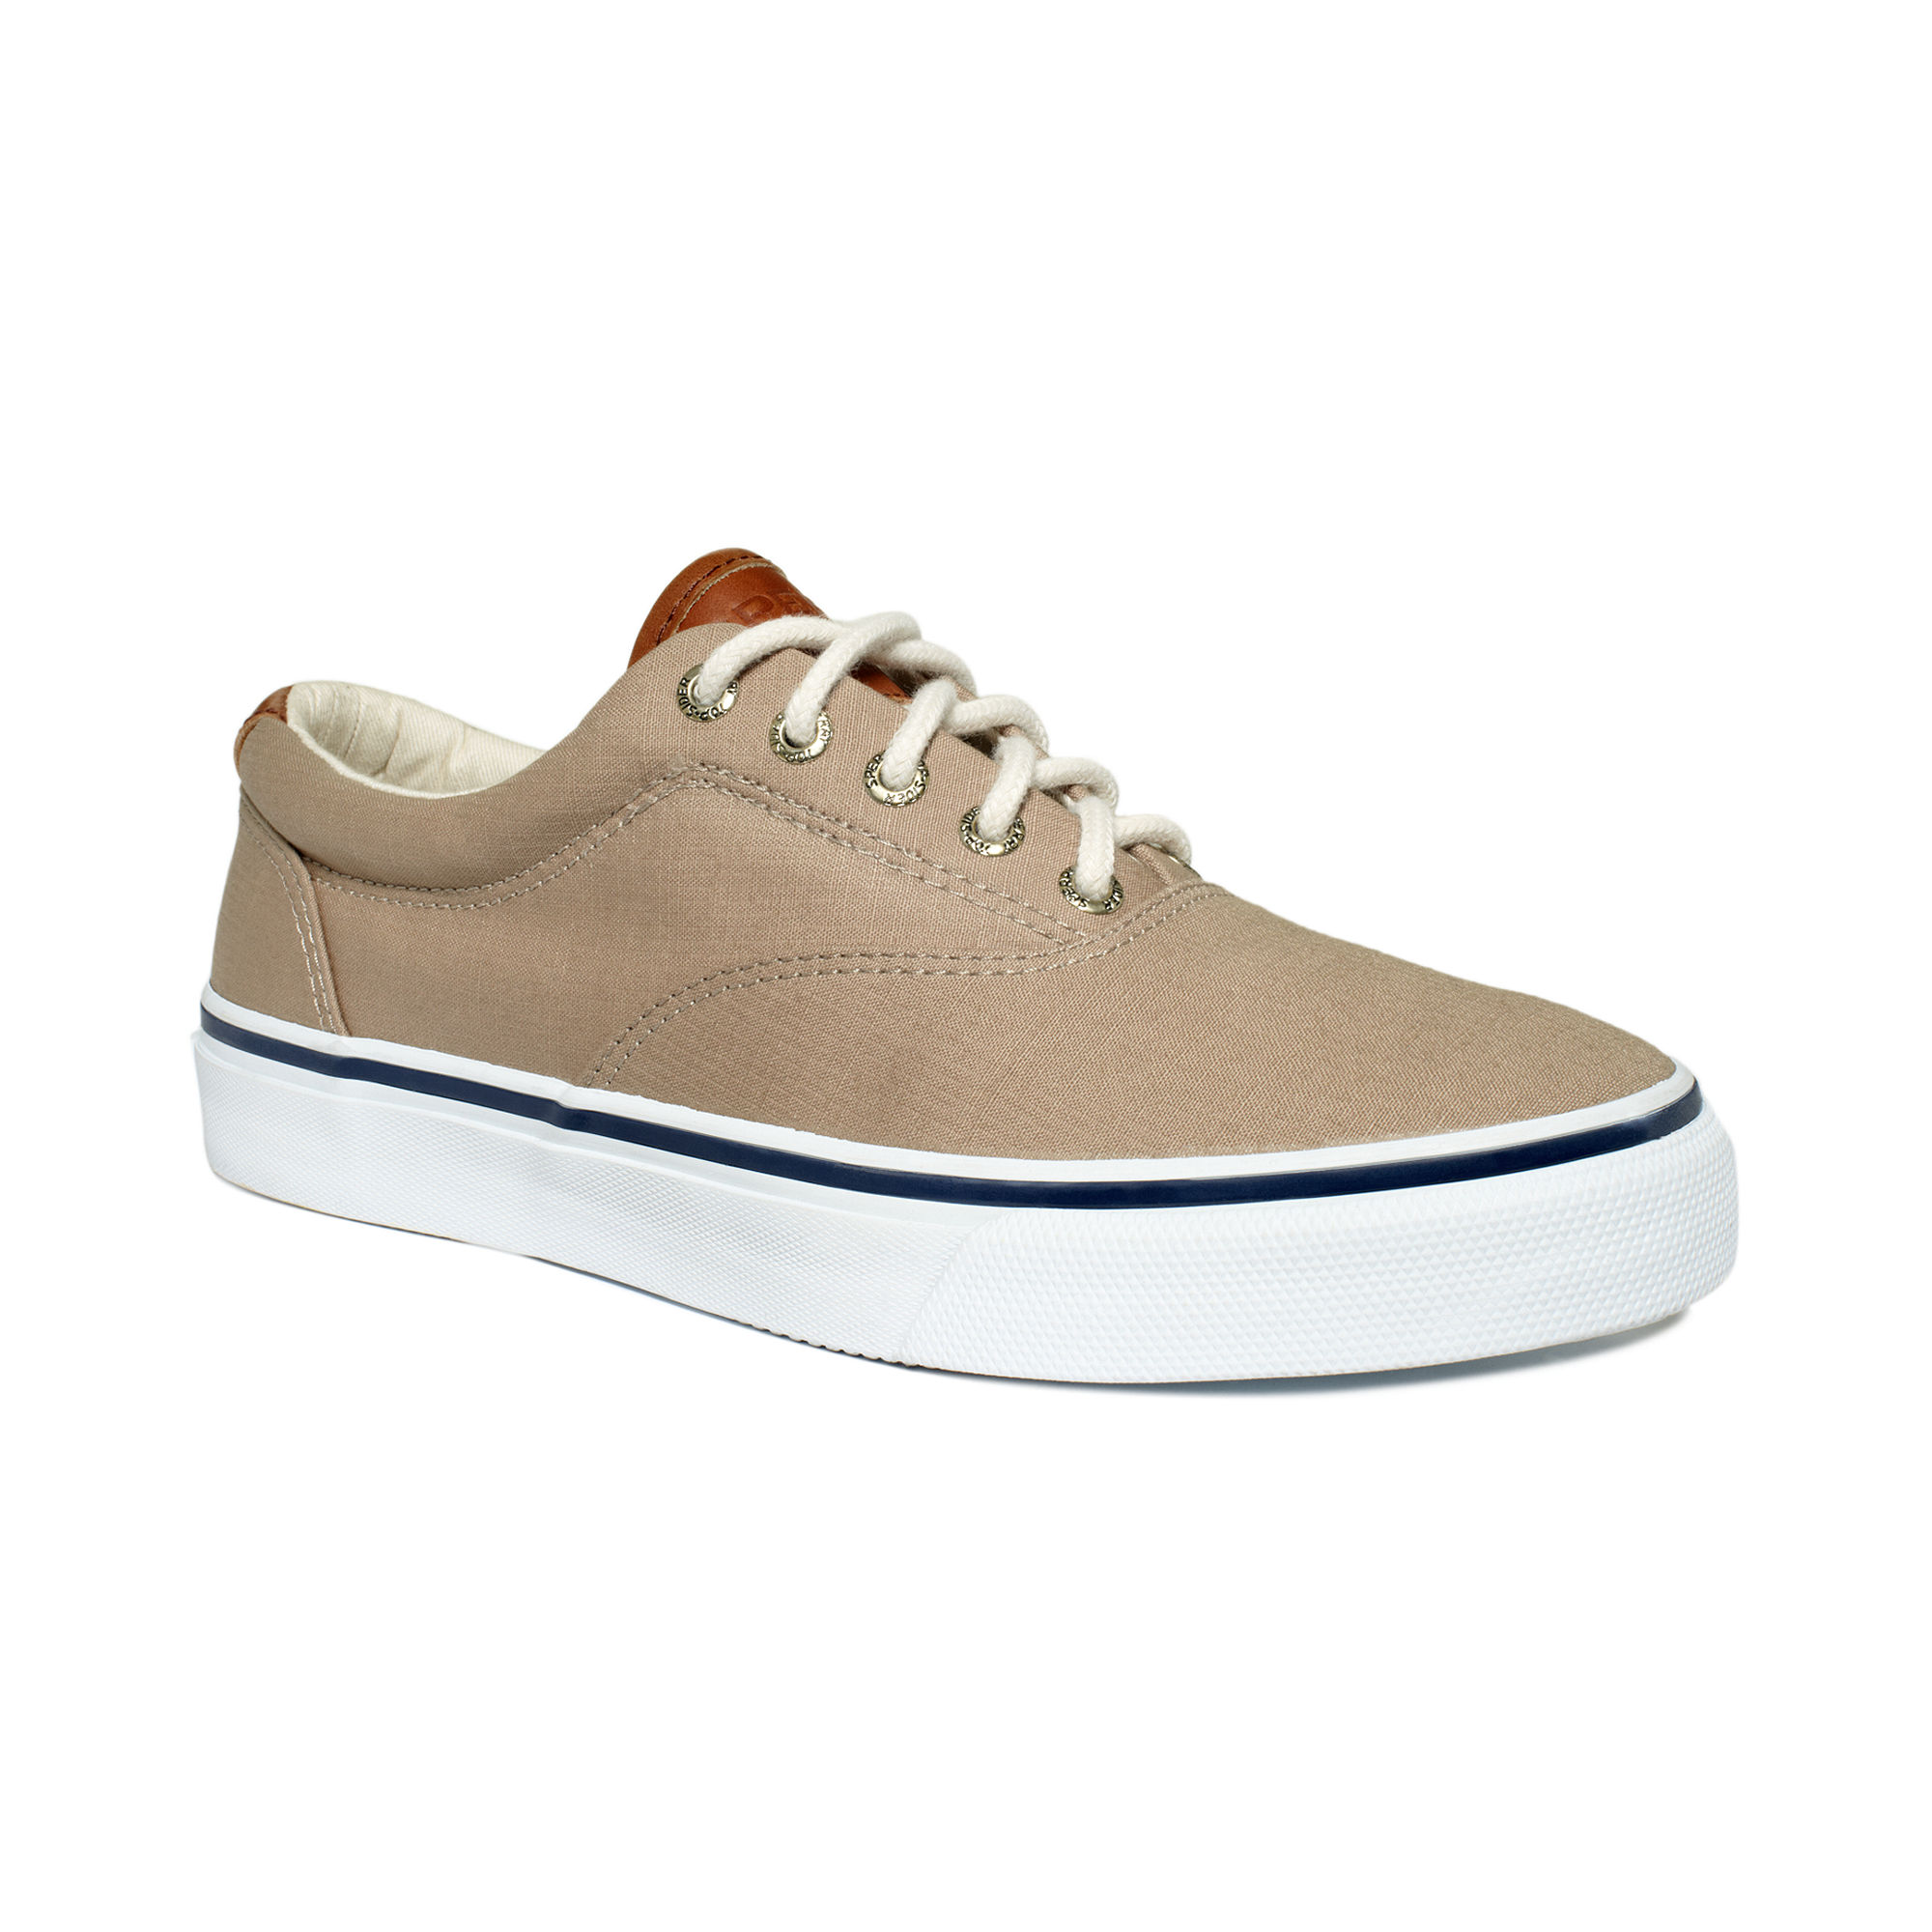 sperry top sider striper laceless canvas shoes in